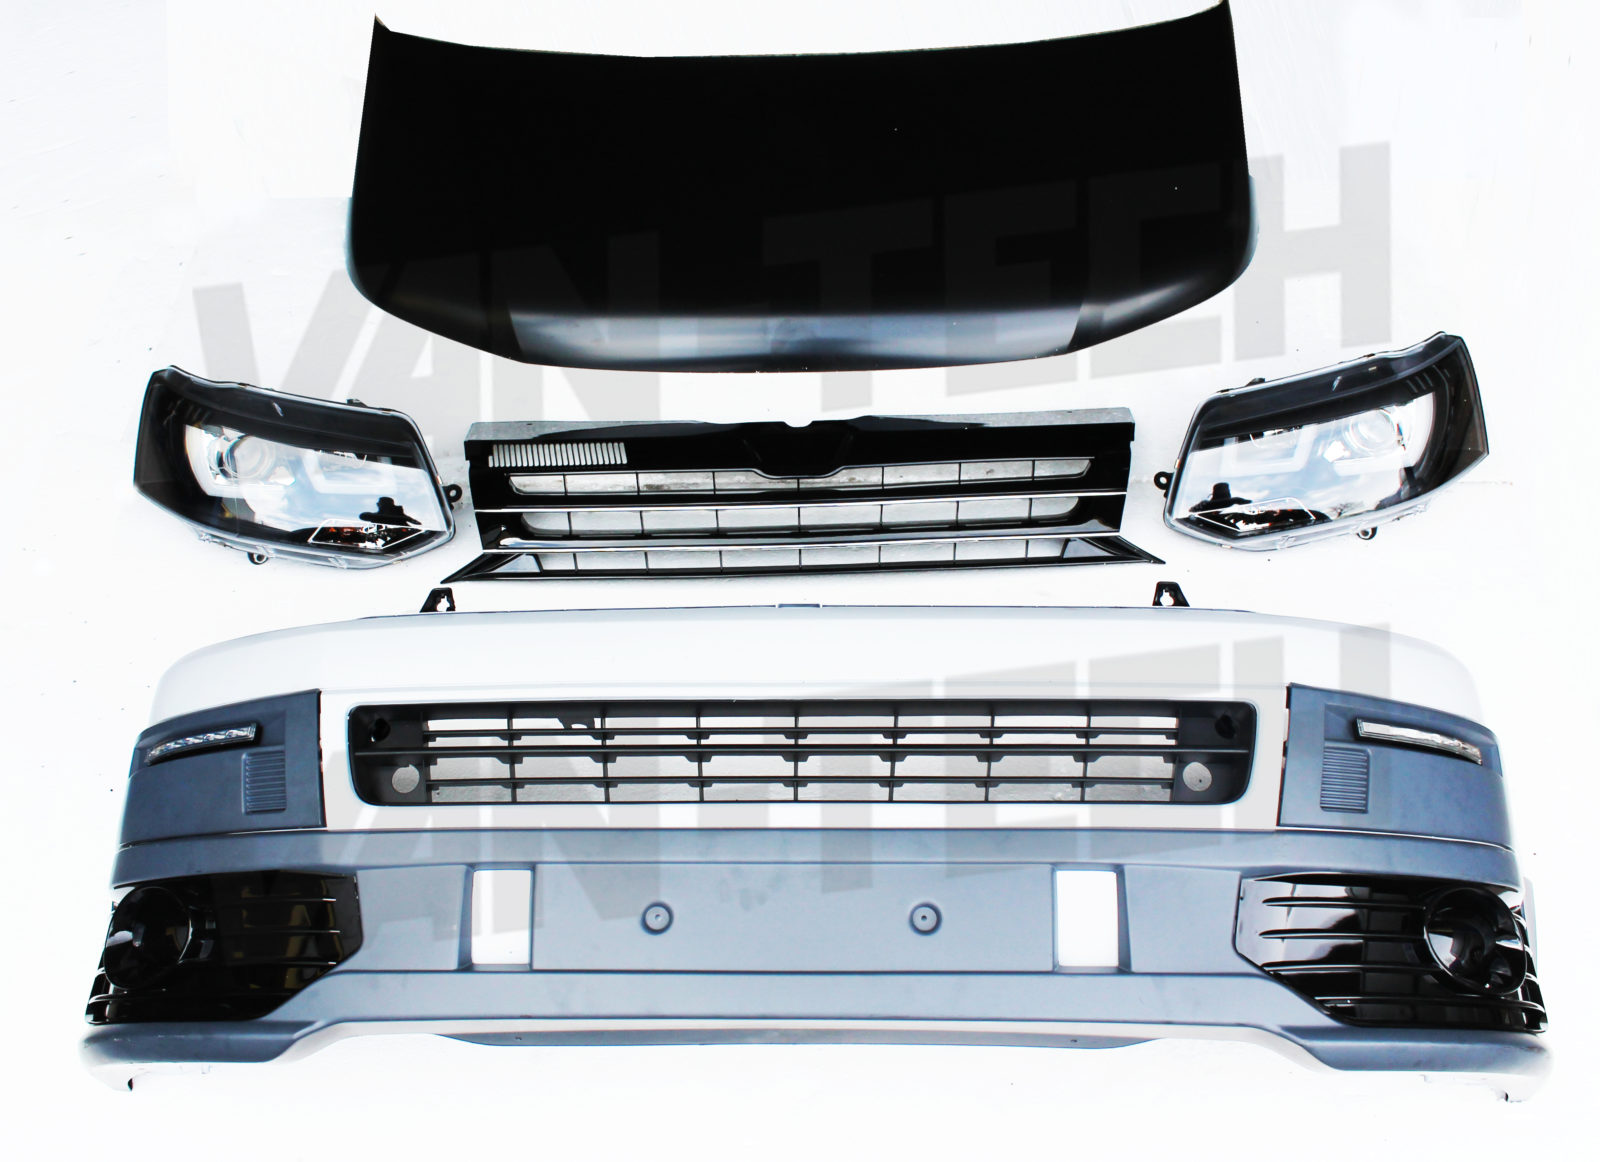 Vw Transporter T5 Front End Conversion Styling Pack 2 Van Tech